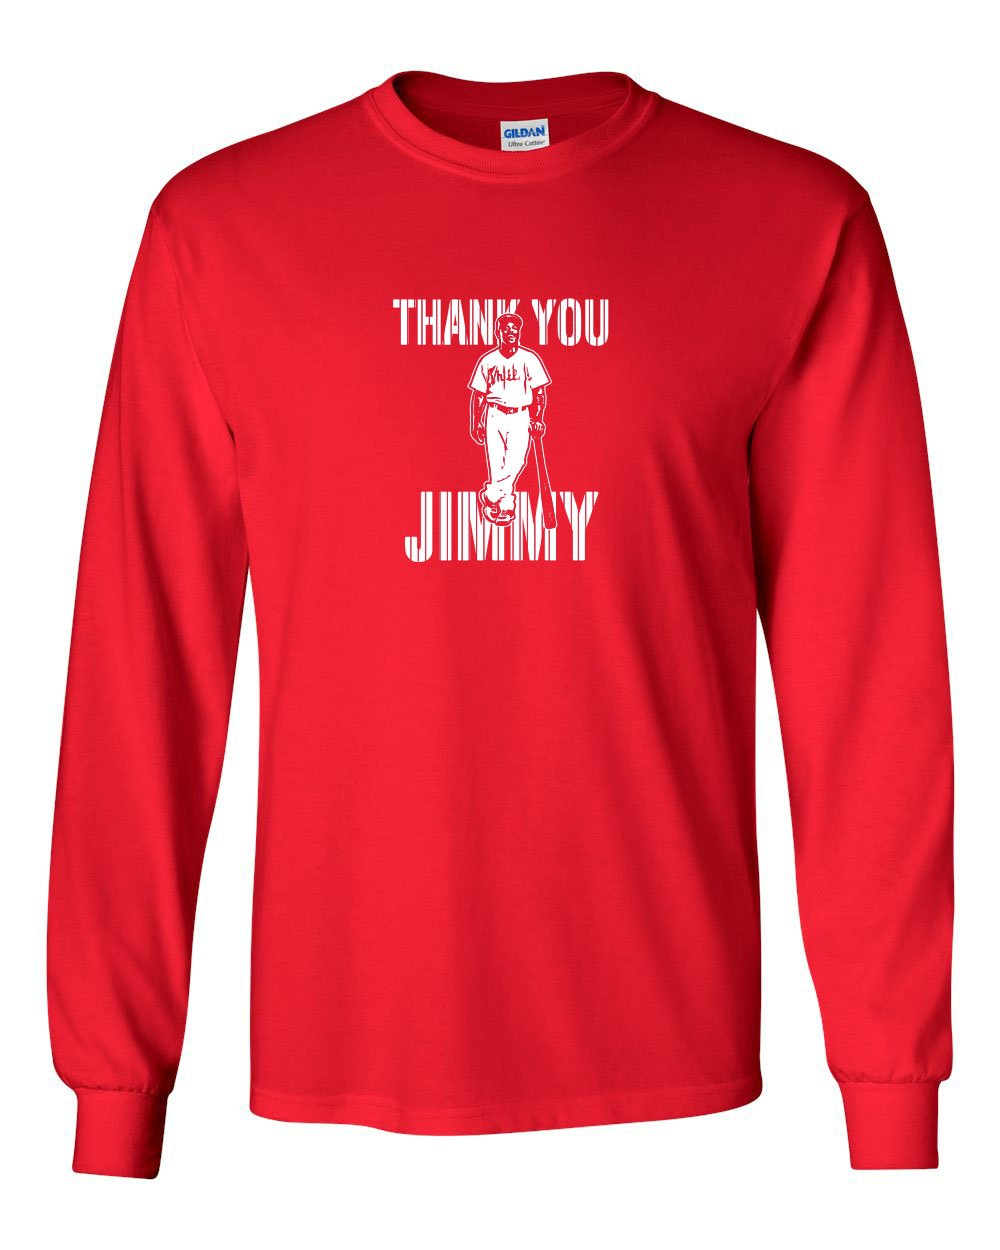 Thank You Jimmy MENS Long Sleeve Heavy Cotton T-Shirt